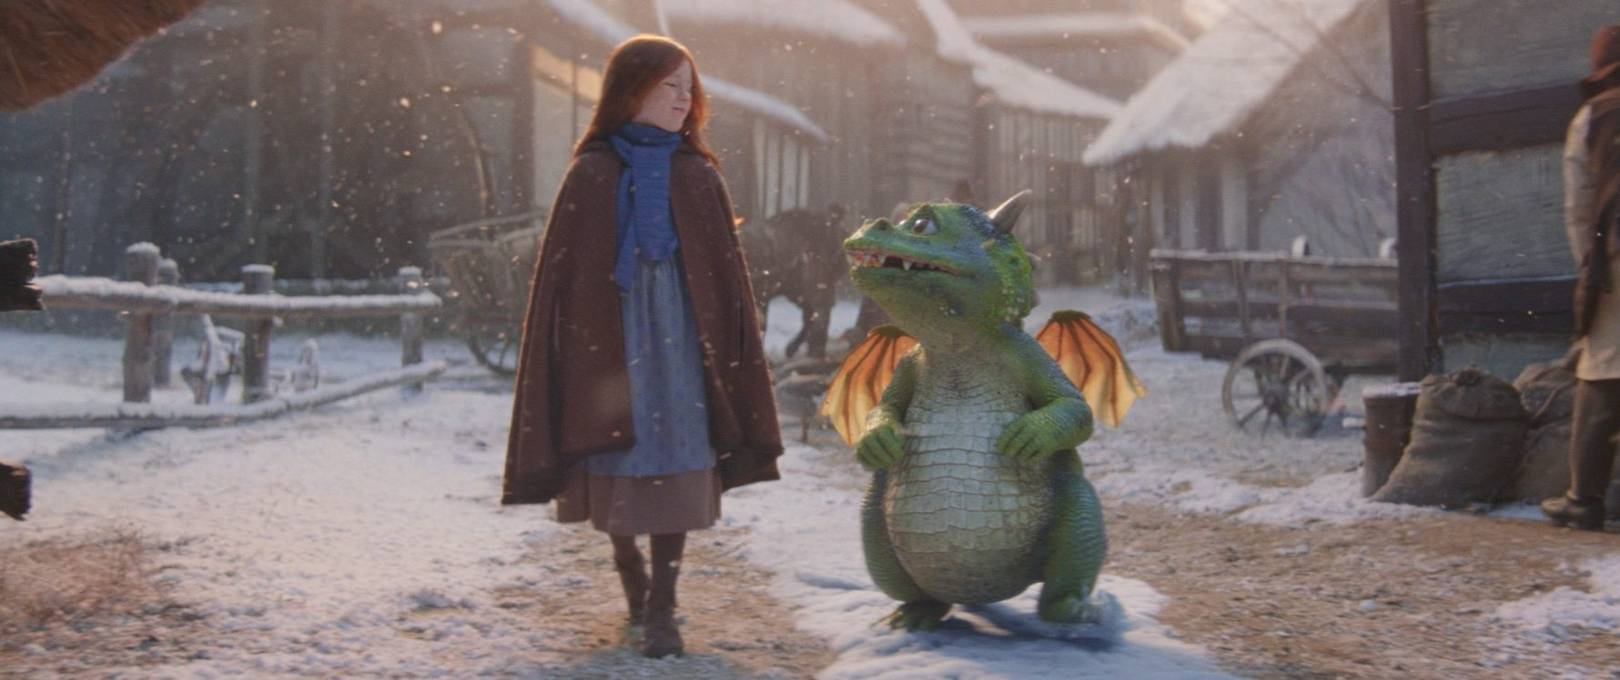 The John Lewis Christmas advert is here and as delightful as ever